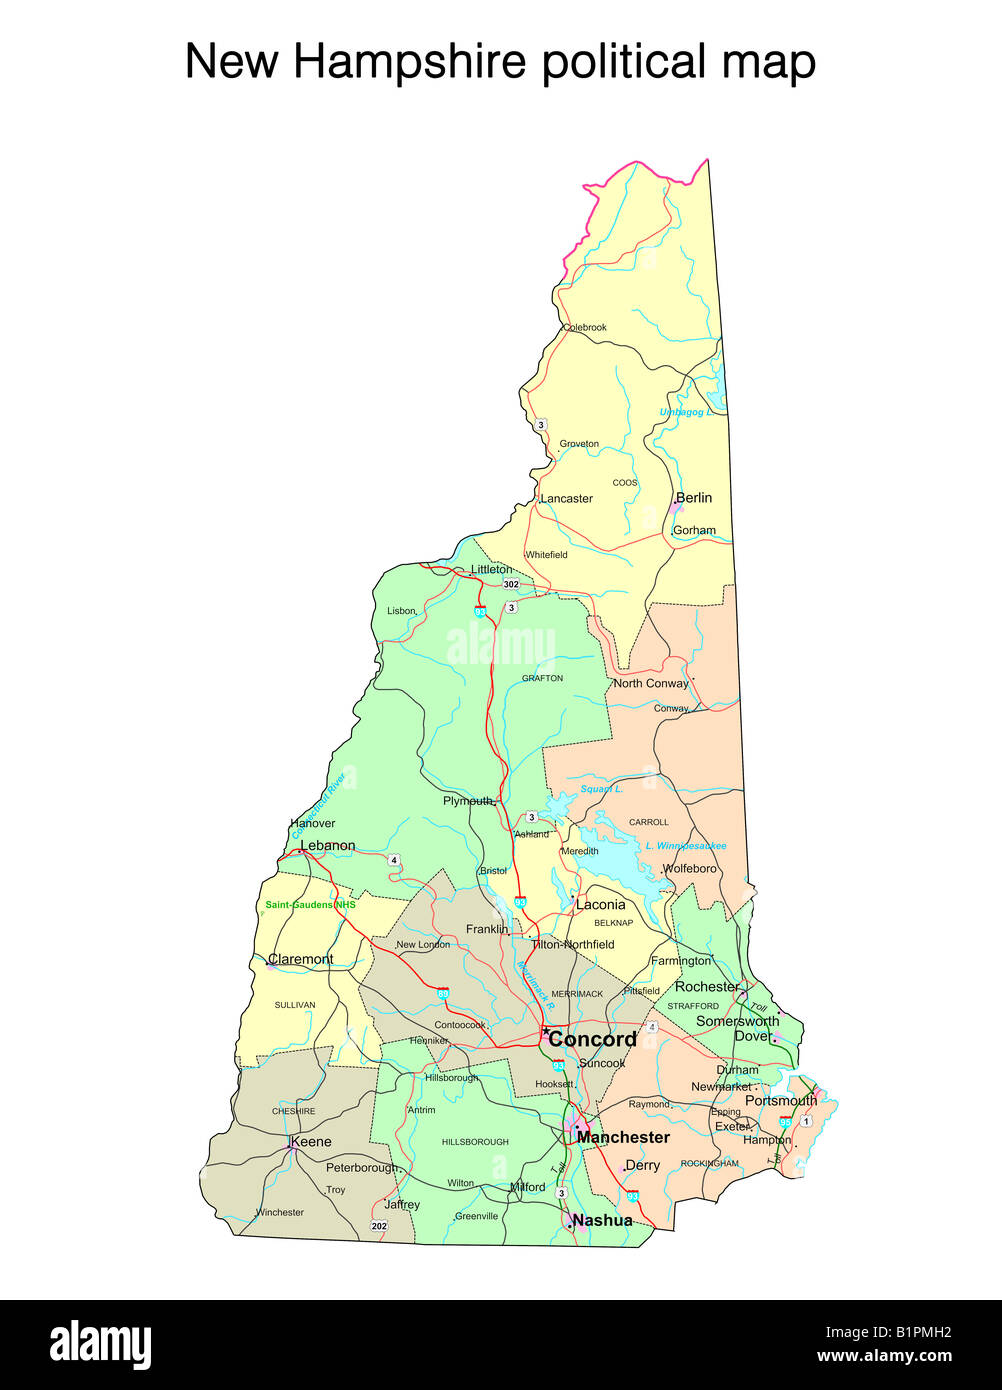 New Hampshire state political map Stock Photo: 18324126   Alamy